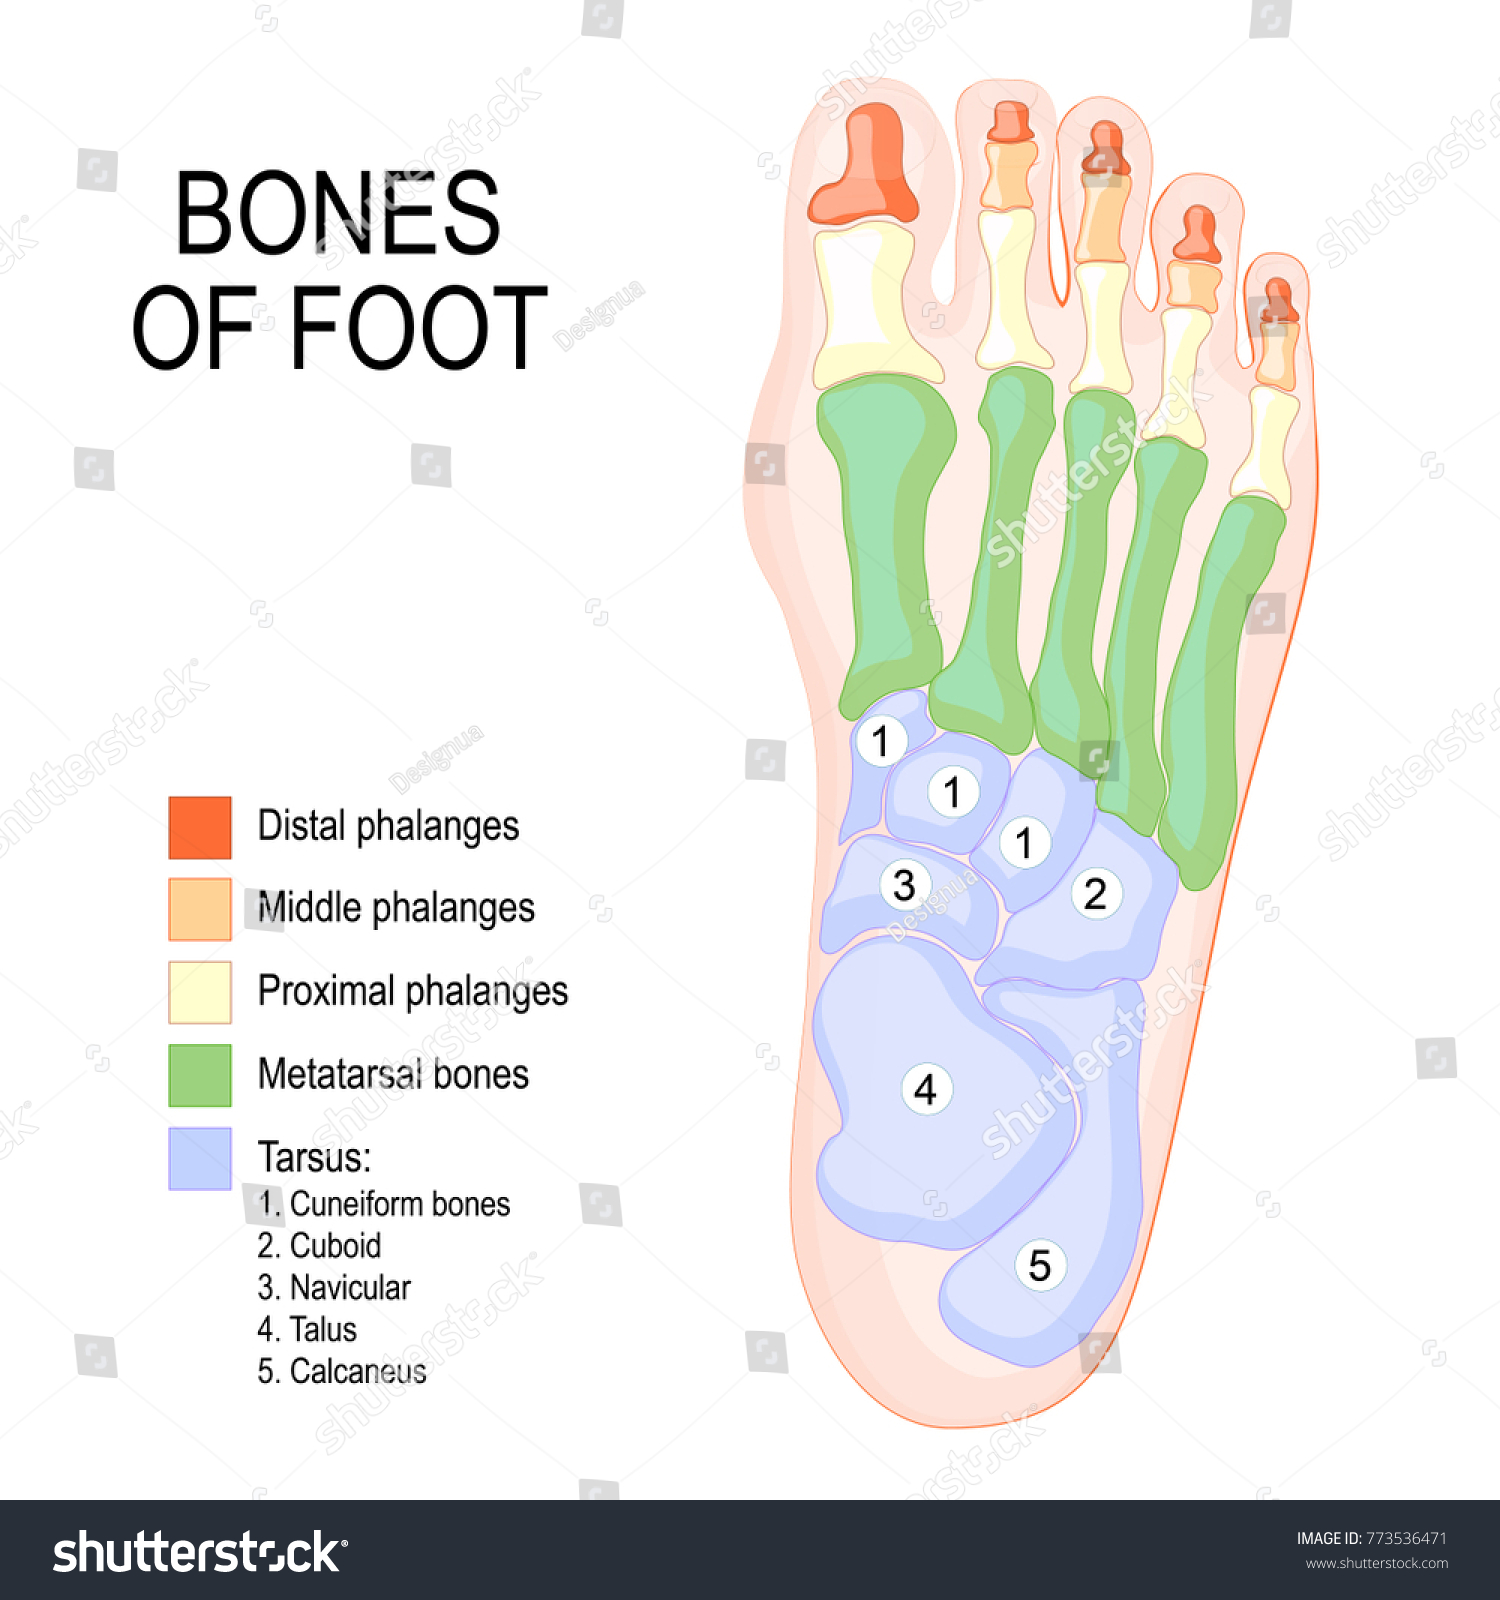 Bones Foot Human Anatomy Diagram Shows Stock Vector 773536471 ...